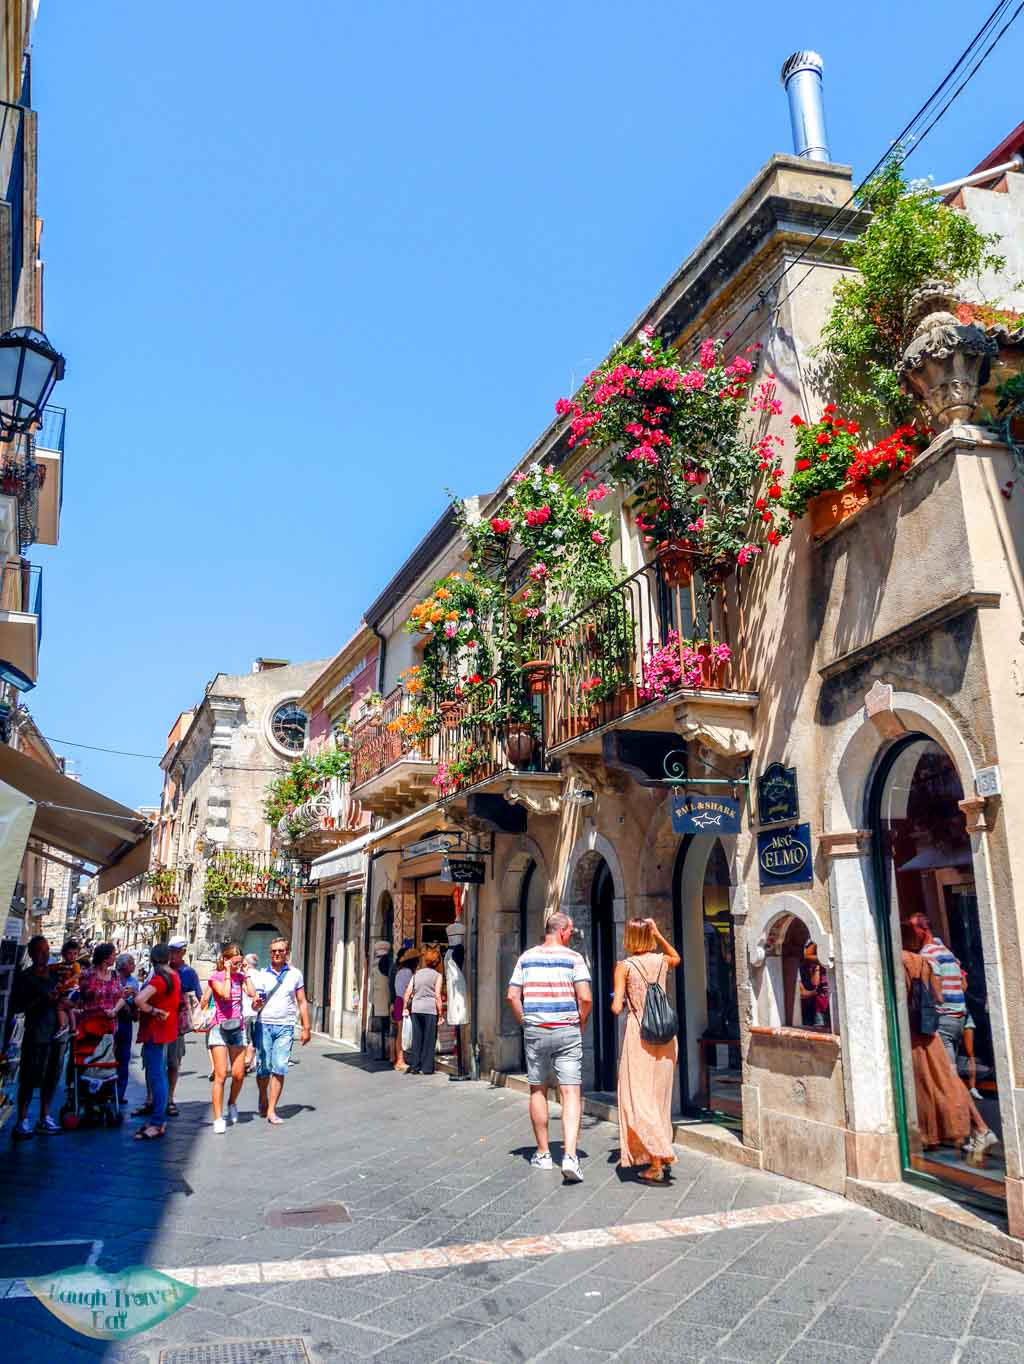 Walking in the old town of Taormina, Sicily | Laugh Travel Eat